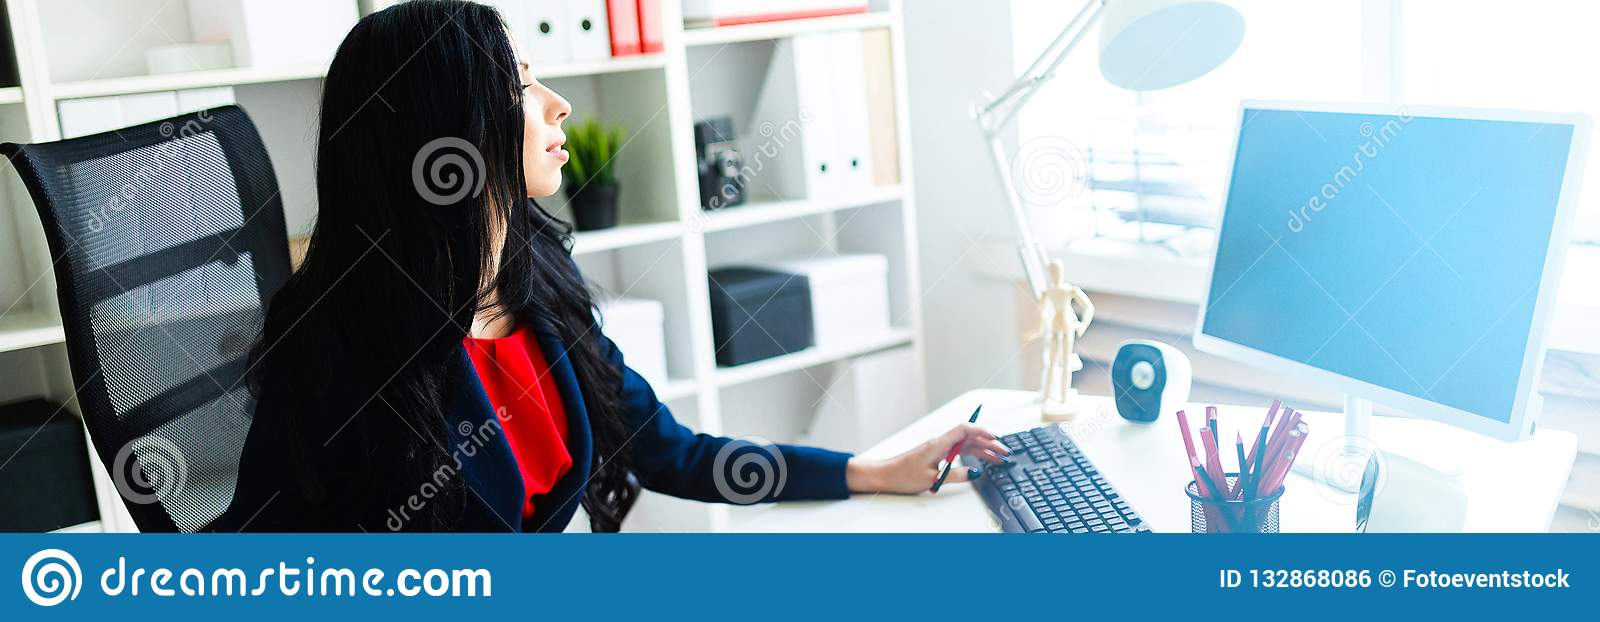 Beautiful young girl working with computer and documents in the office at the table.